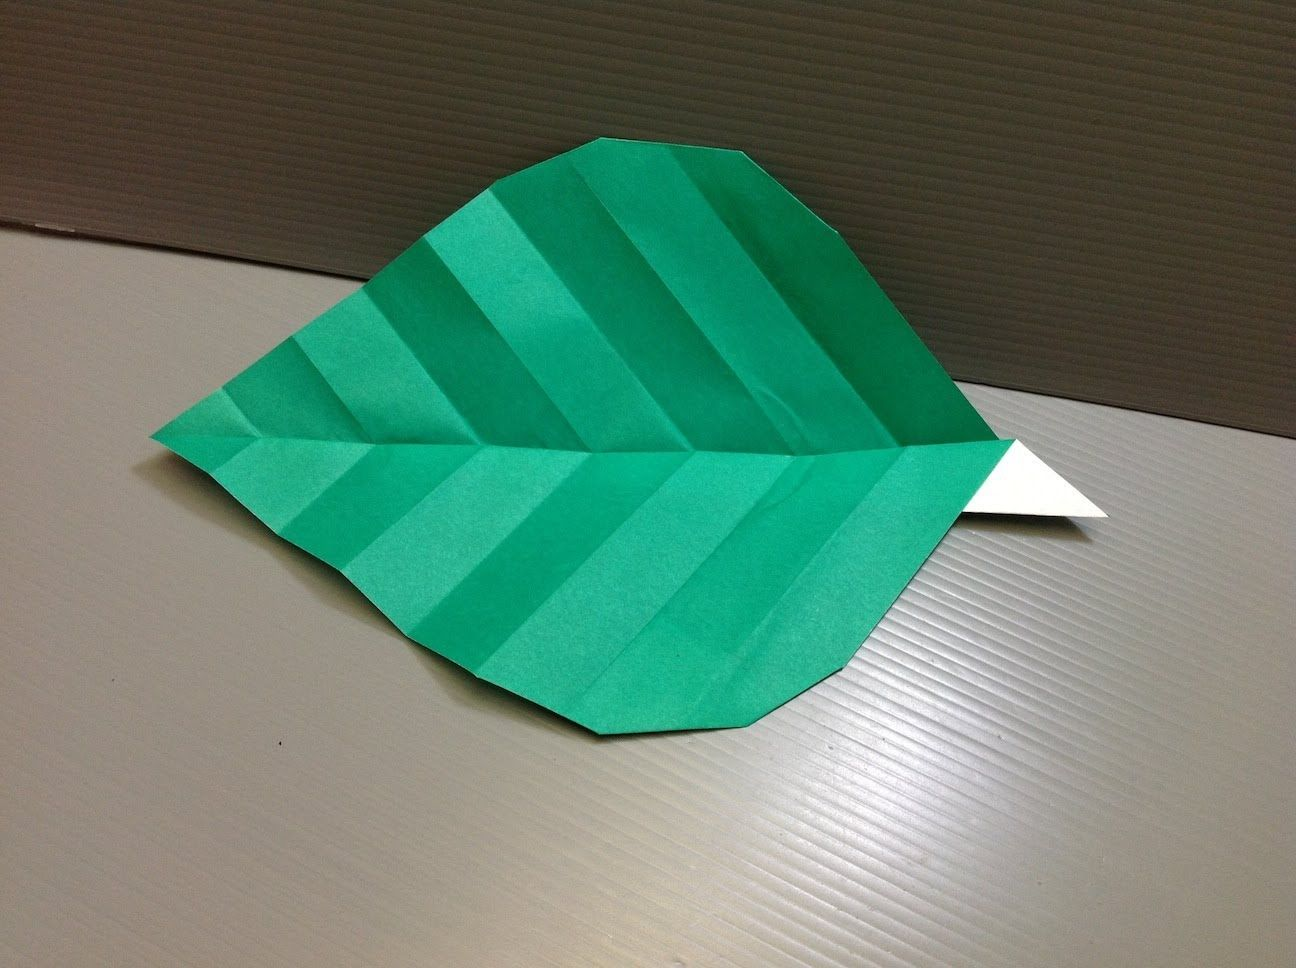 Pin by maria usztyan on origami flower pinterest origami how to make an origami leaf origami leaf designed by traditional origami style pure sheet of paper no scissors no glue completion time mightylinksfo